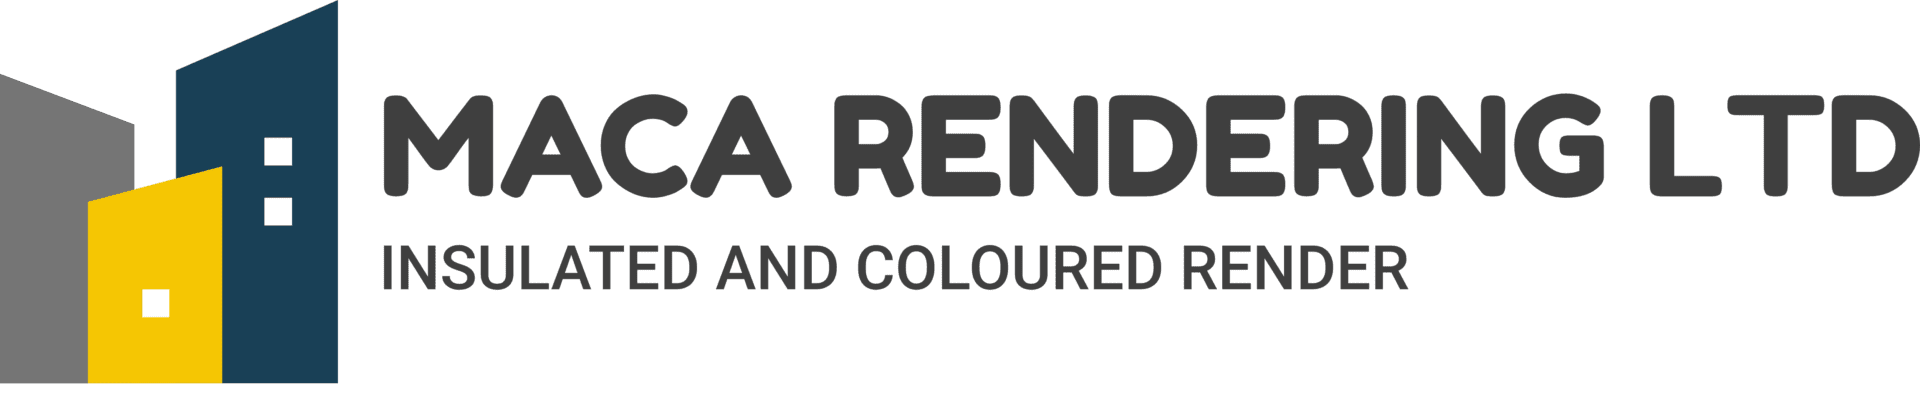 Maca Rendering Ltd